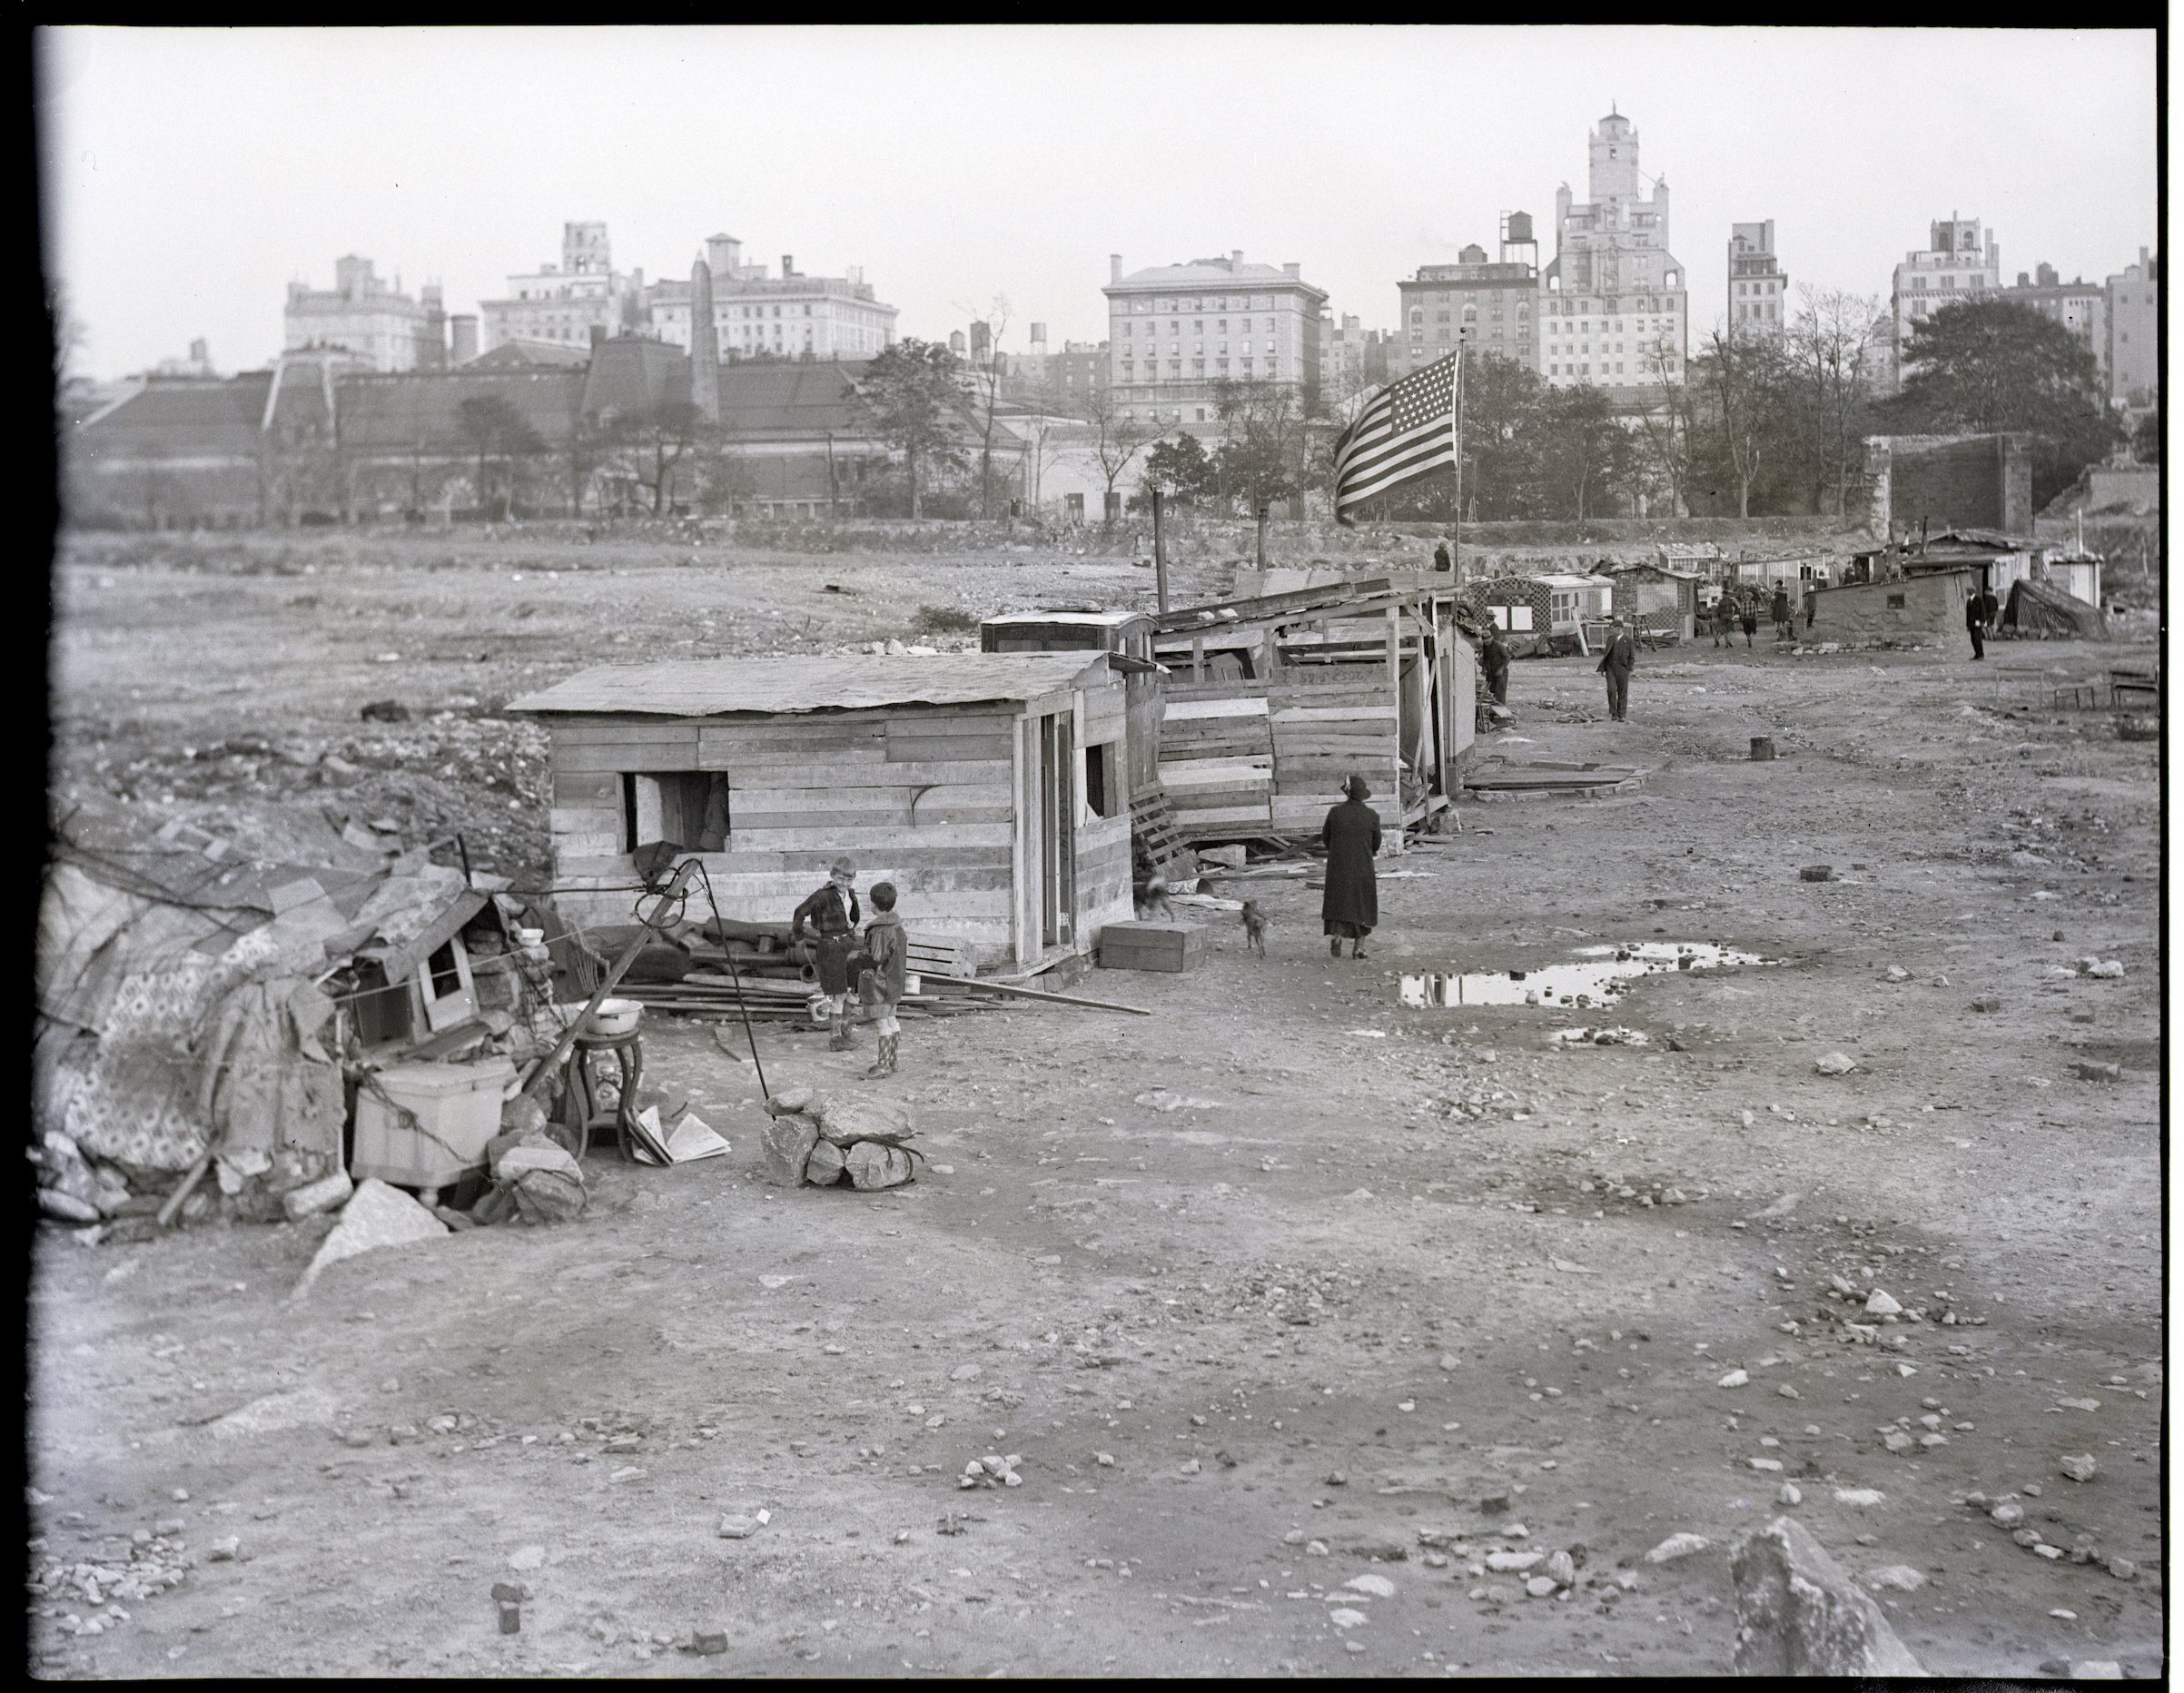 A Depression-era  Hooverville  in the old Central Park reservoir in New York City. Undated photograph.